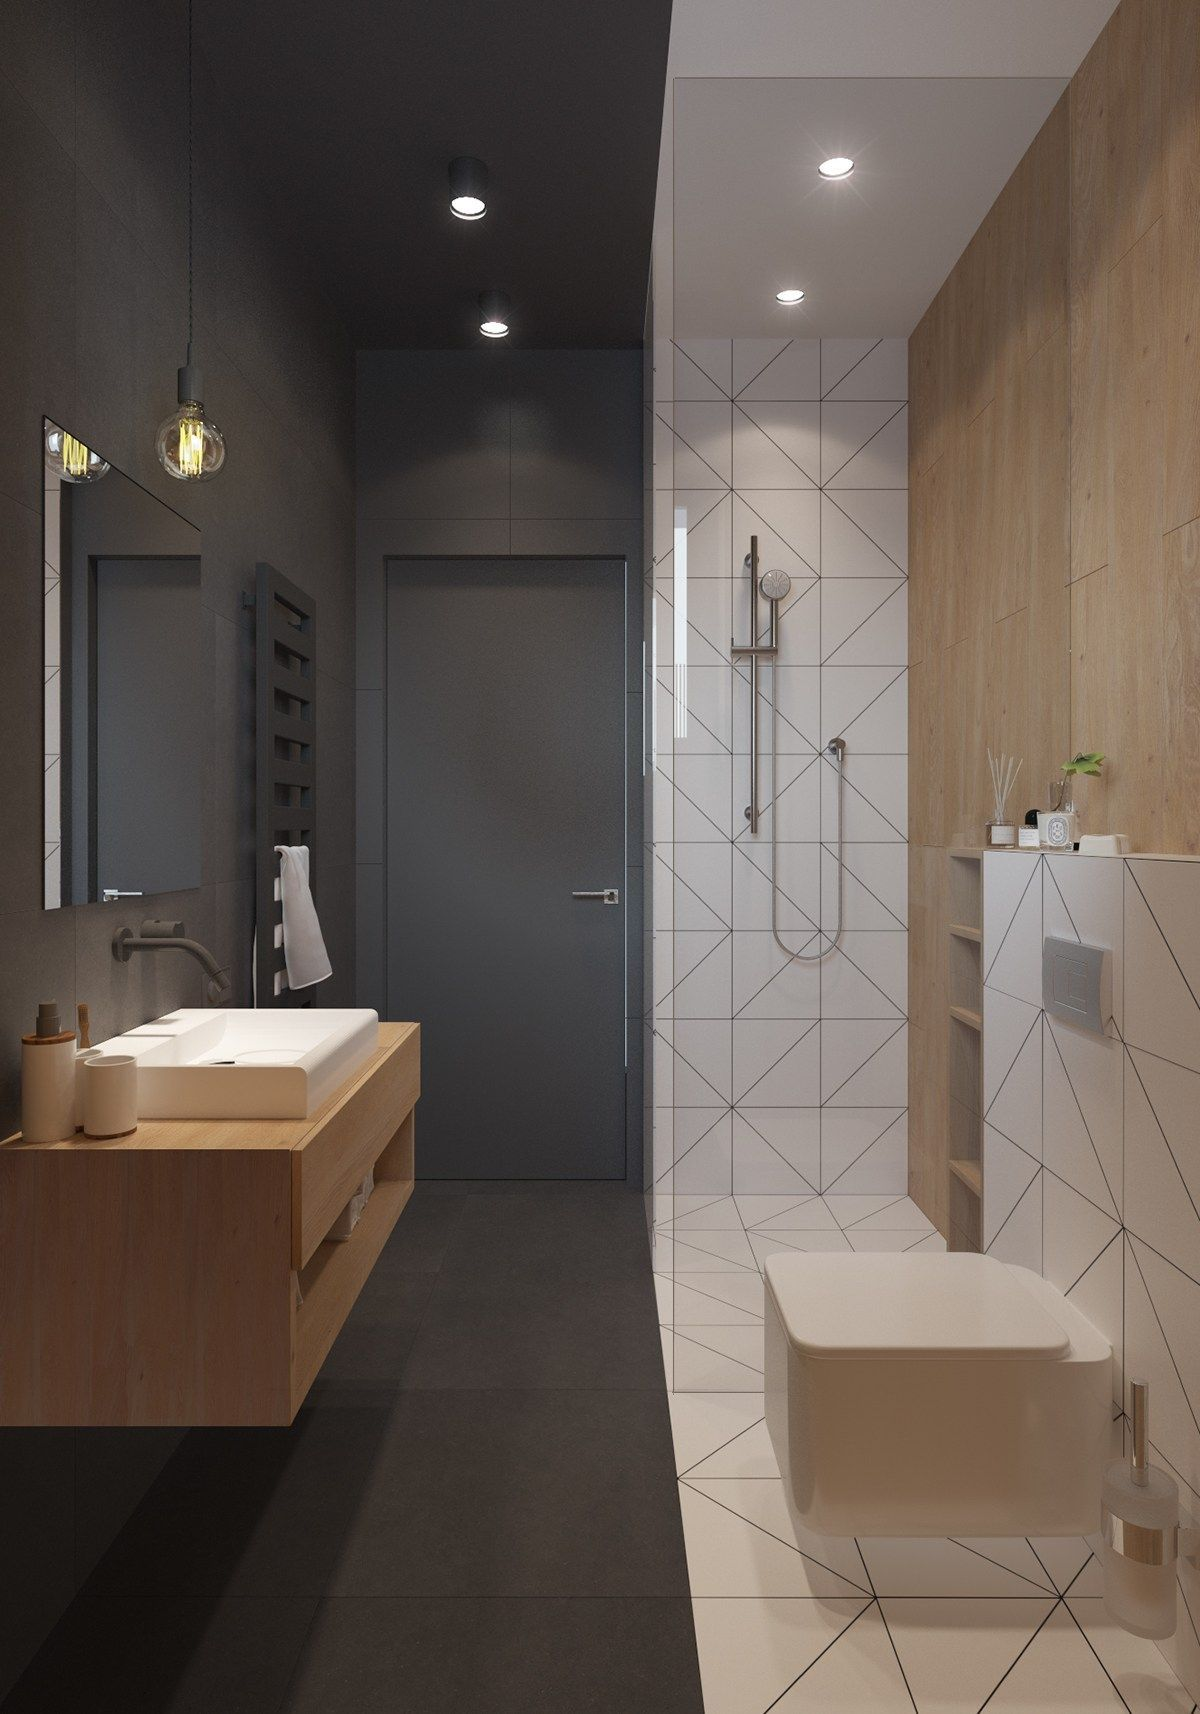 Modern house interior bathroom  best bathroom design ideas expected to be big in   small